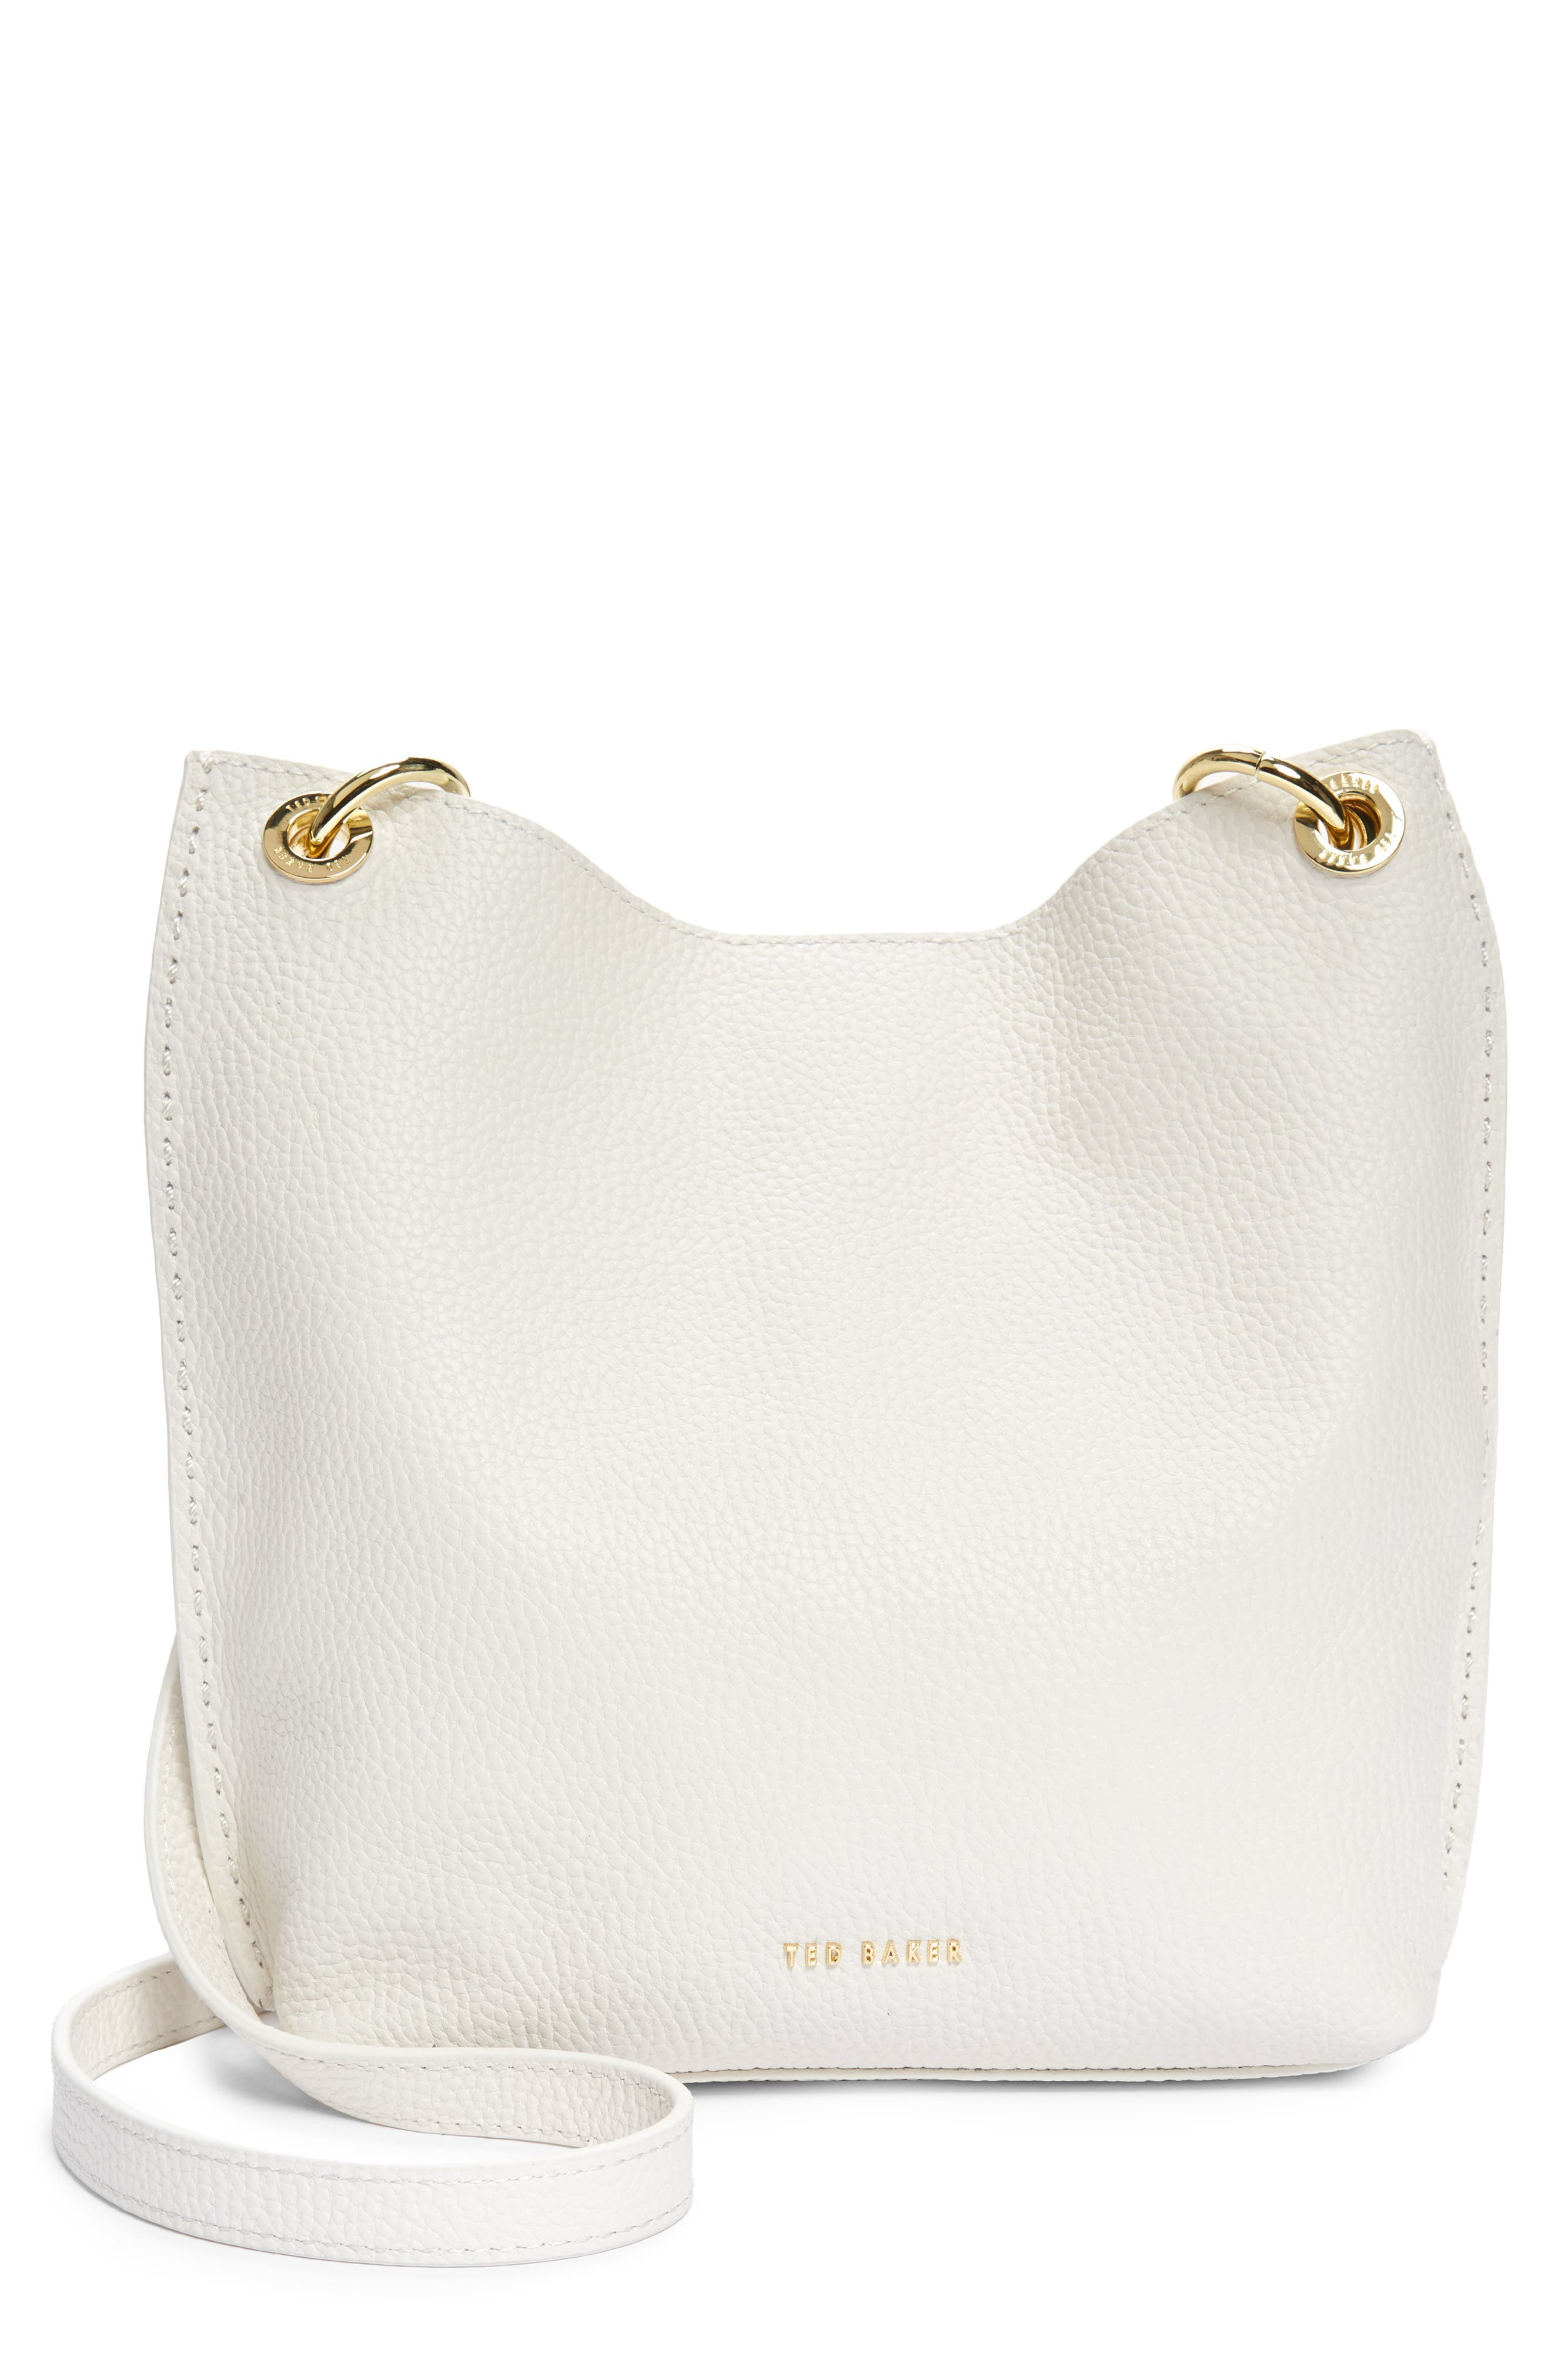 A chain-detailed crossbody strap polishes the look of a grained calfskin-leather hobo that has the perfect balance of softness and structure. Style Name: Ted Baker London Mini Holiiee Leather Crossbody Bag. Style Number: 6064433. Available in stores.